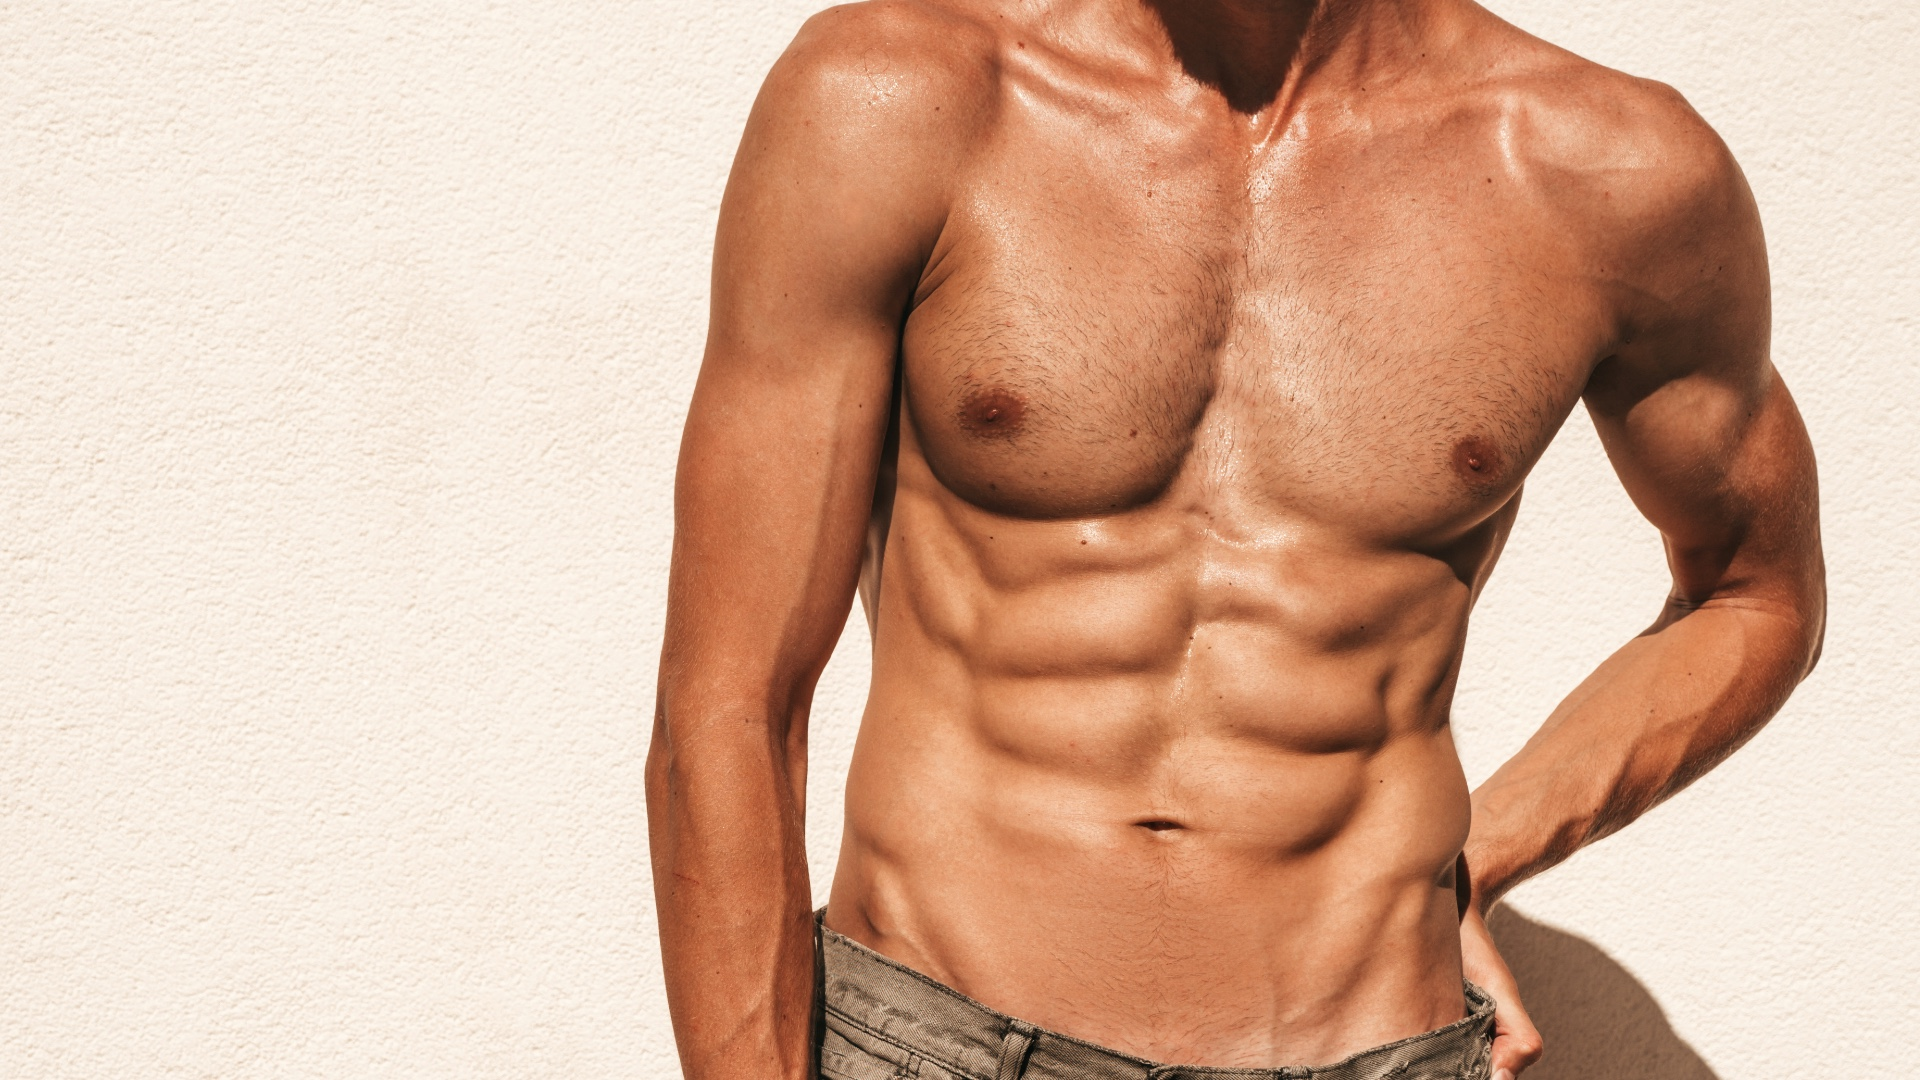 The Sex Lines Workout To Build An Abdominal V Men S Journal